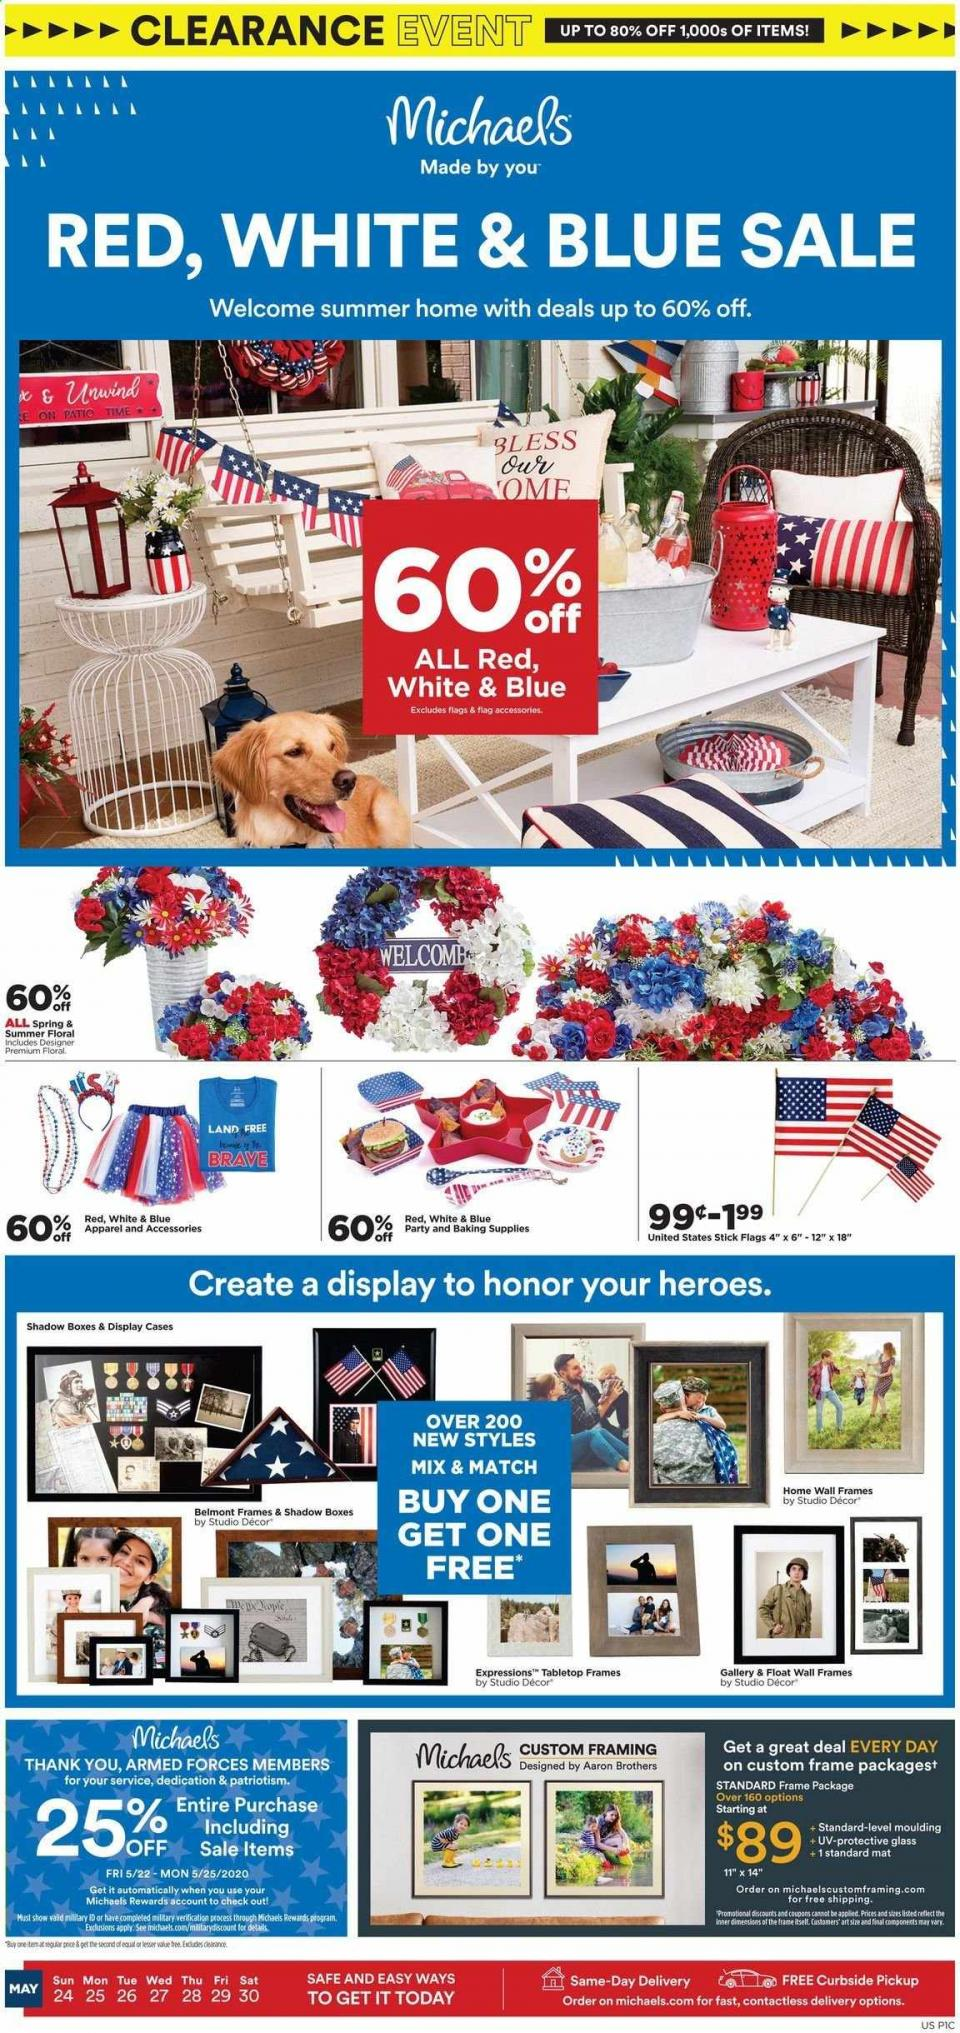 Michaels May Clearance Weekly Ad valid from May 24 – 30, 2020